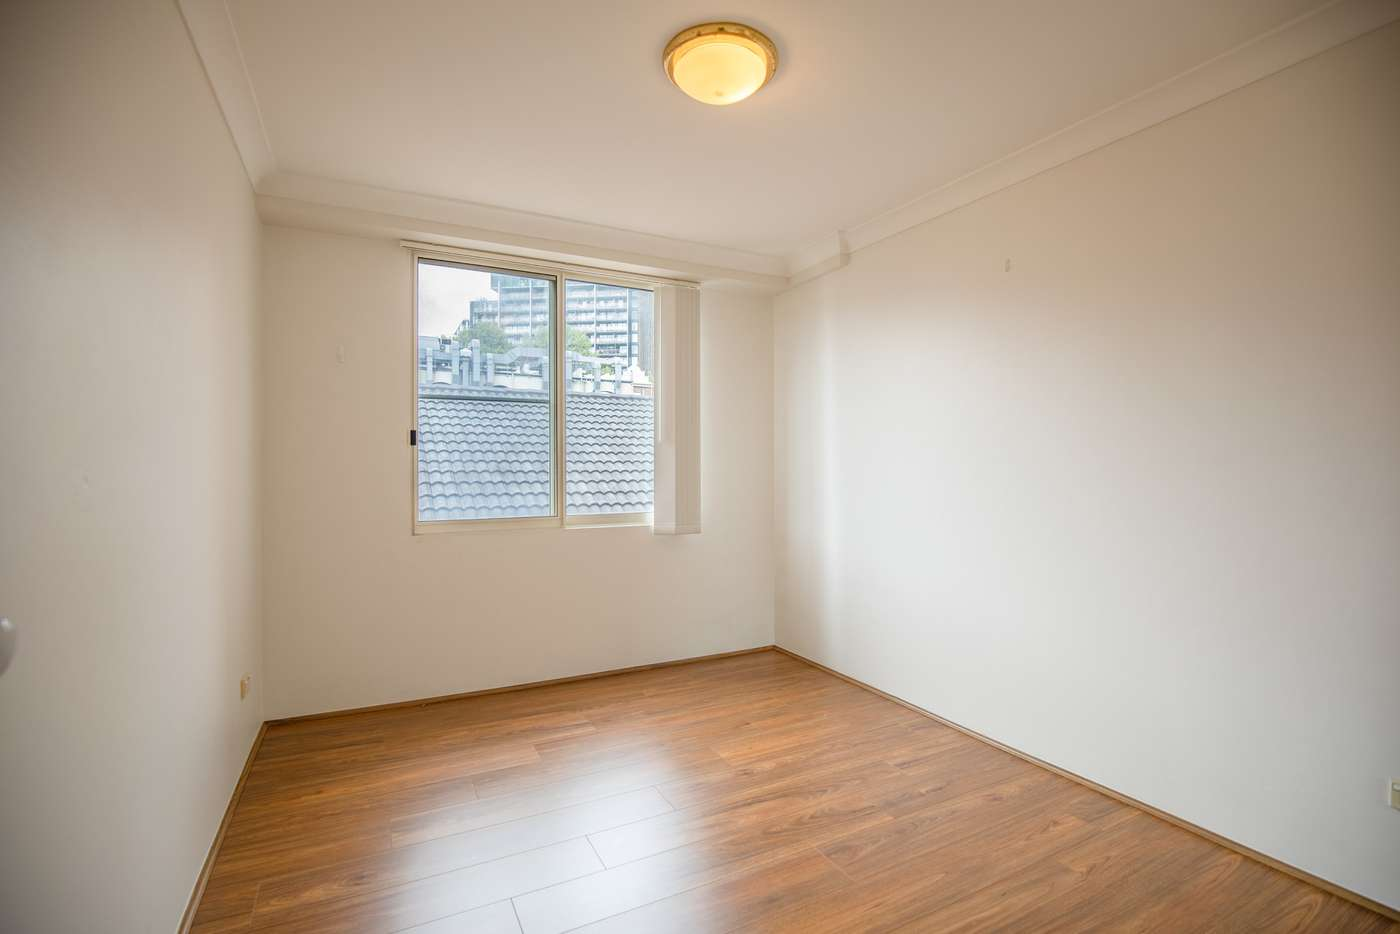 Sixth view of Homely apartment listing, 32/8 Norman Street, Darlinghurst NSW 2010